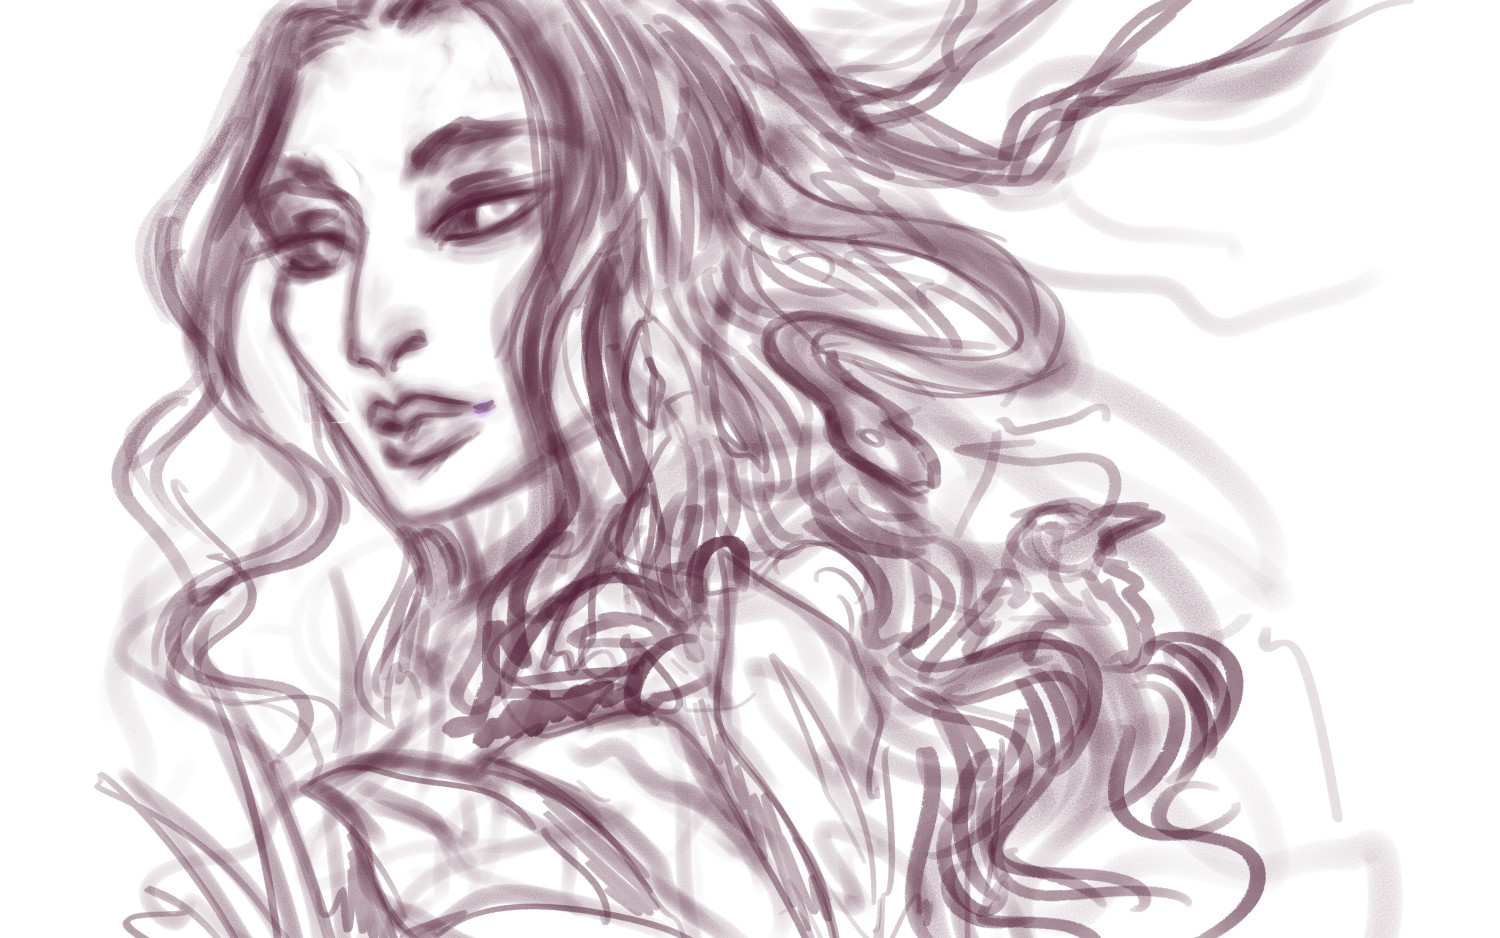 Original rough sketch. The hair details had more life and character, so I may revisit this piece in the future to add something to her wild character